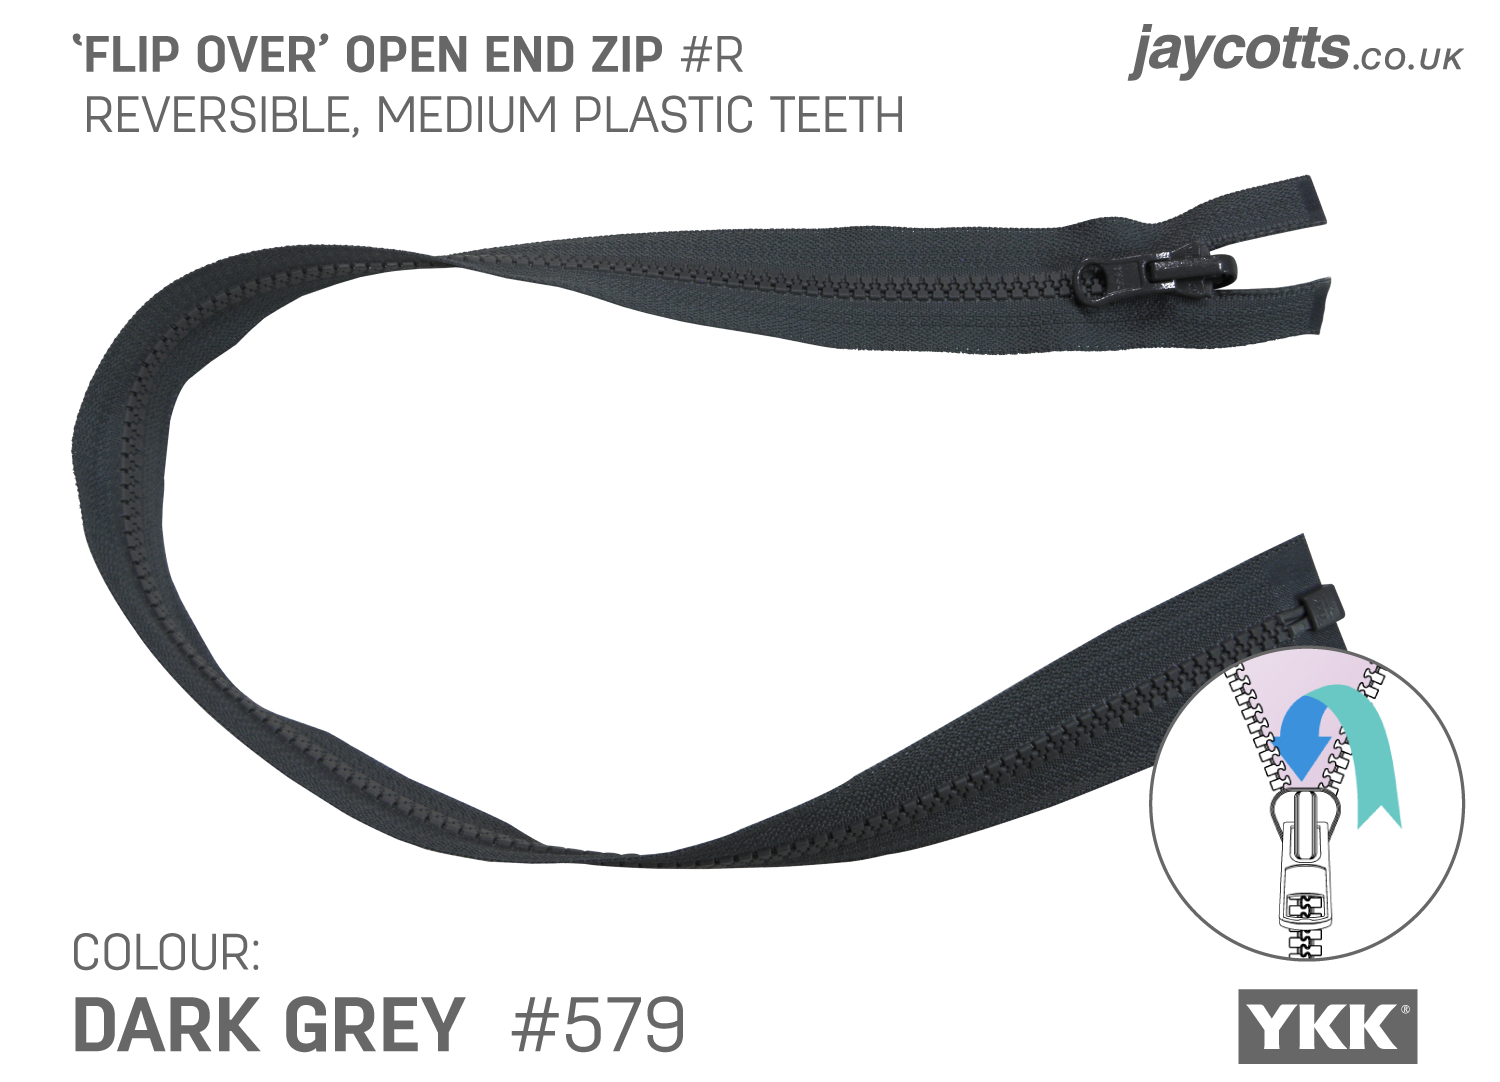 Reversible Open End Zip - DARK GREY